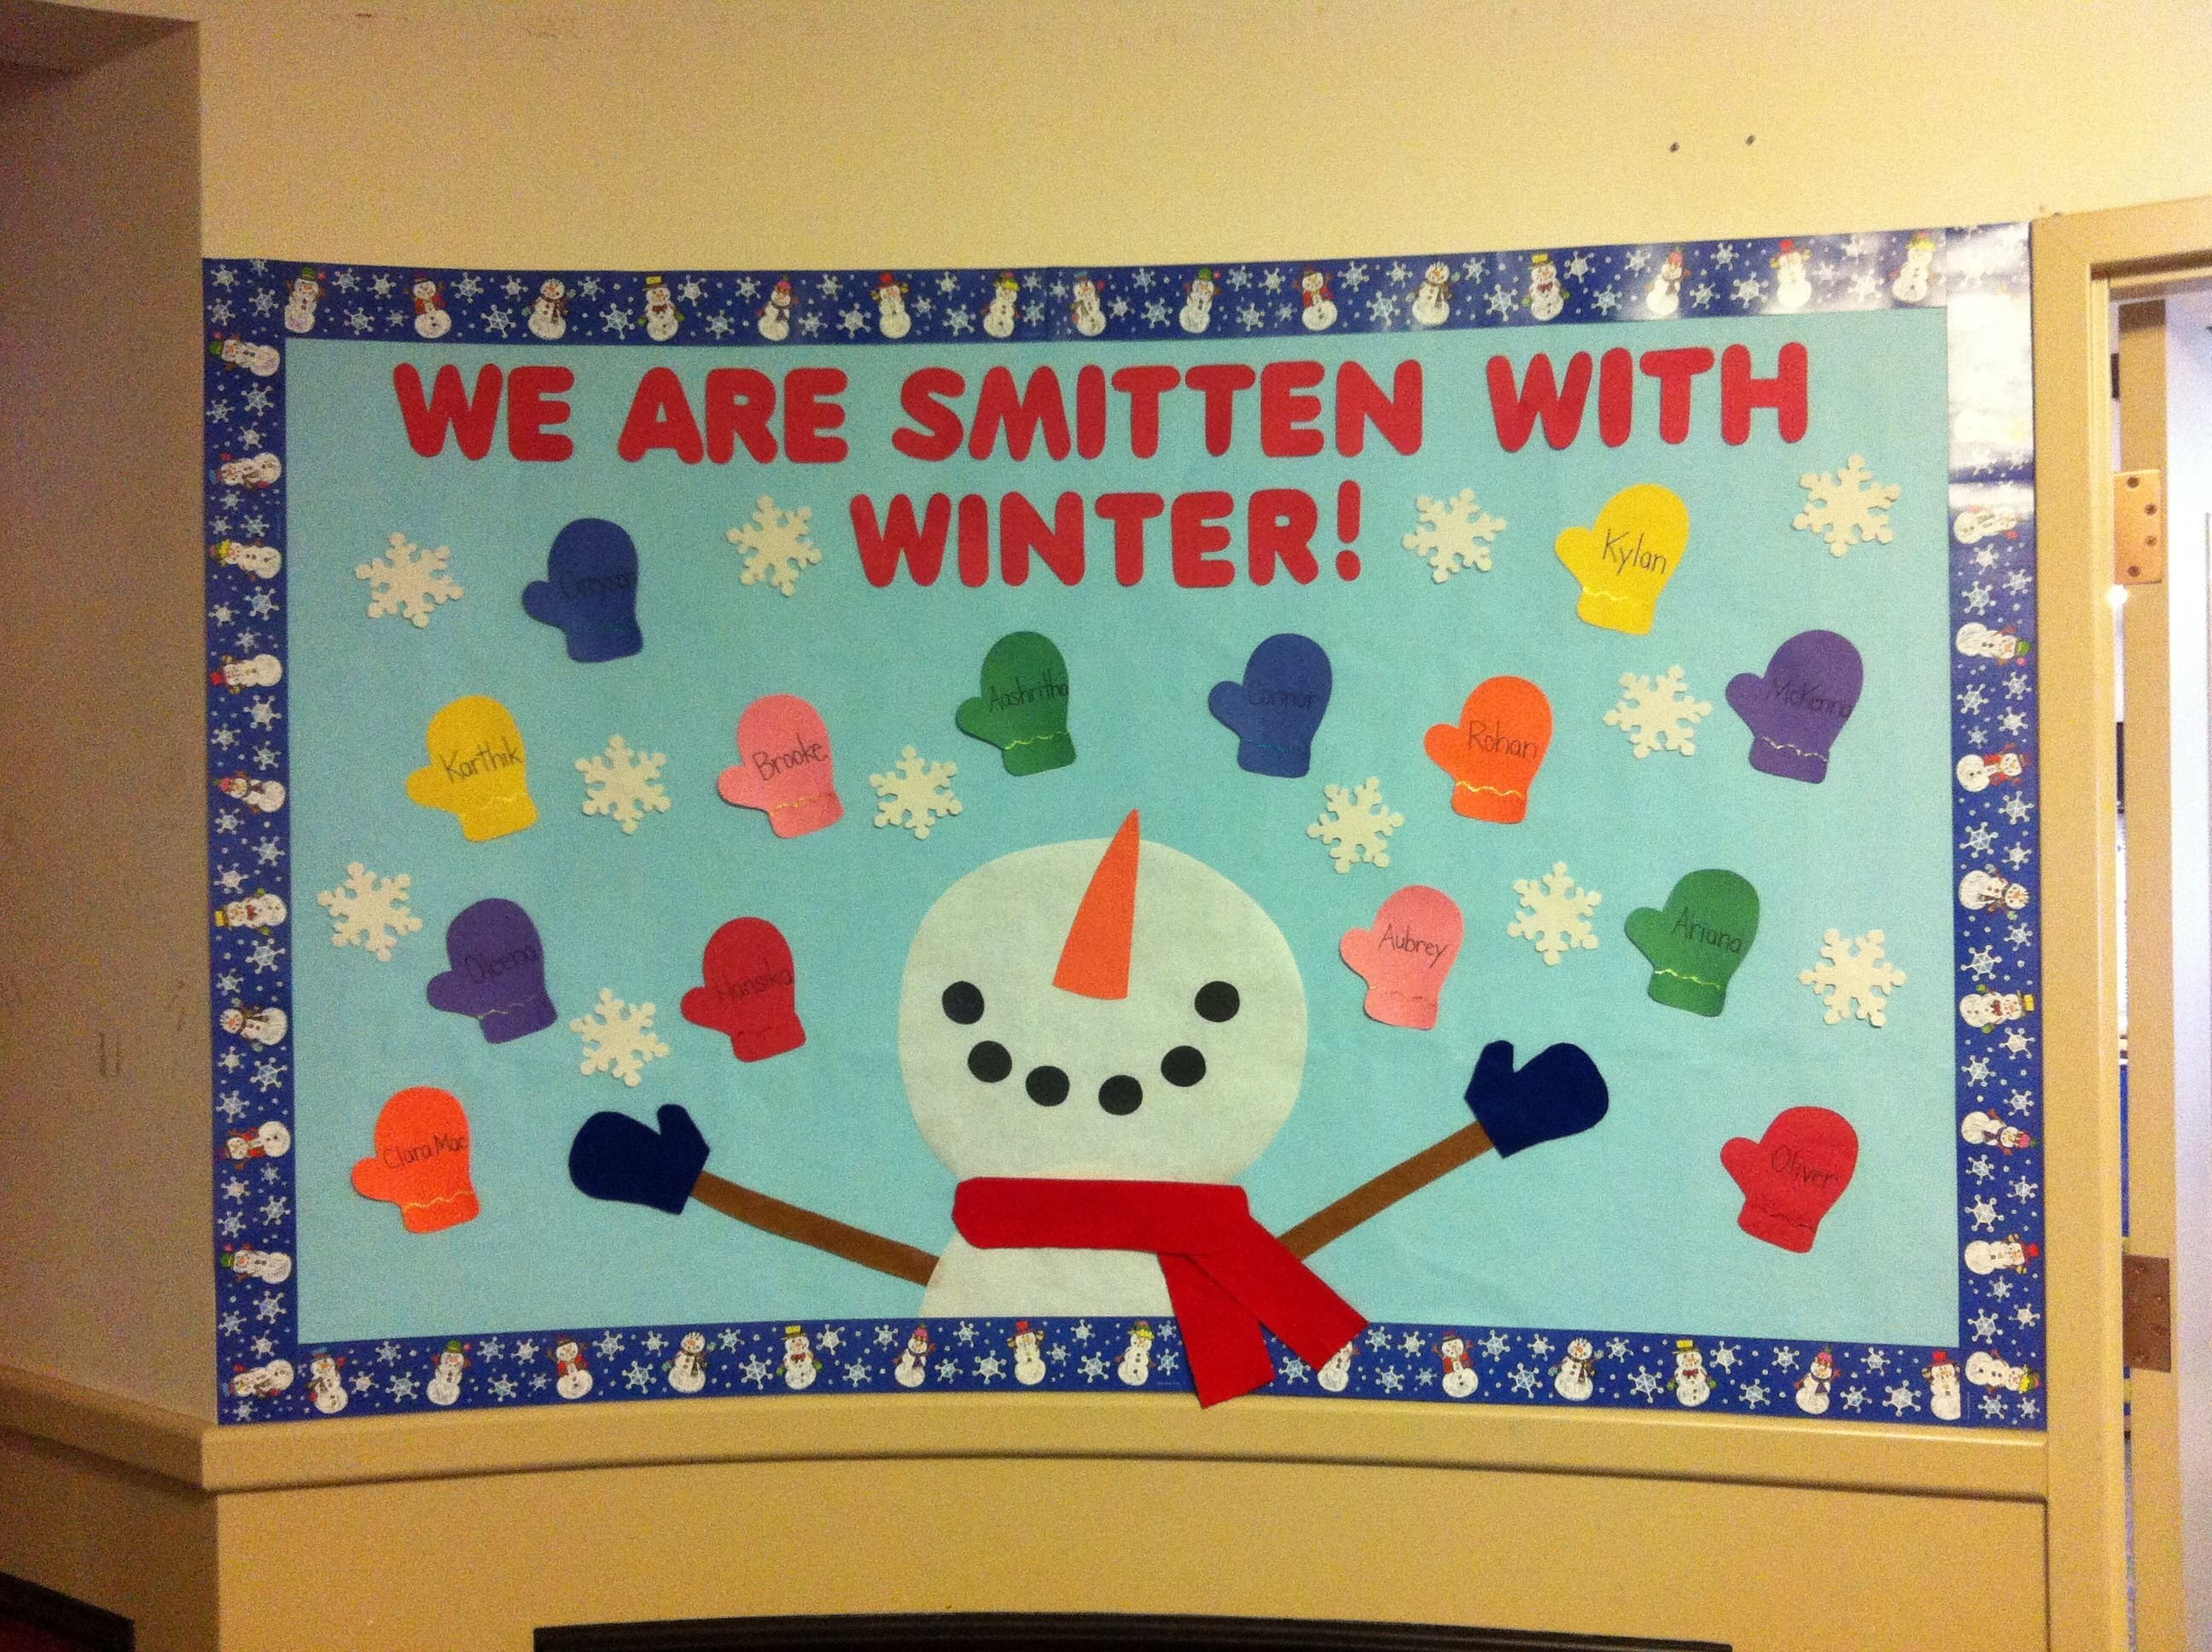 10 Stylish January Bulletin Board Ideas For Teachers winter bulletin board we are smitten with winter and the mittens 1 2021